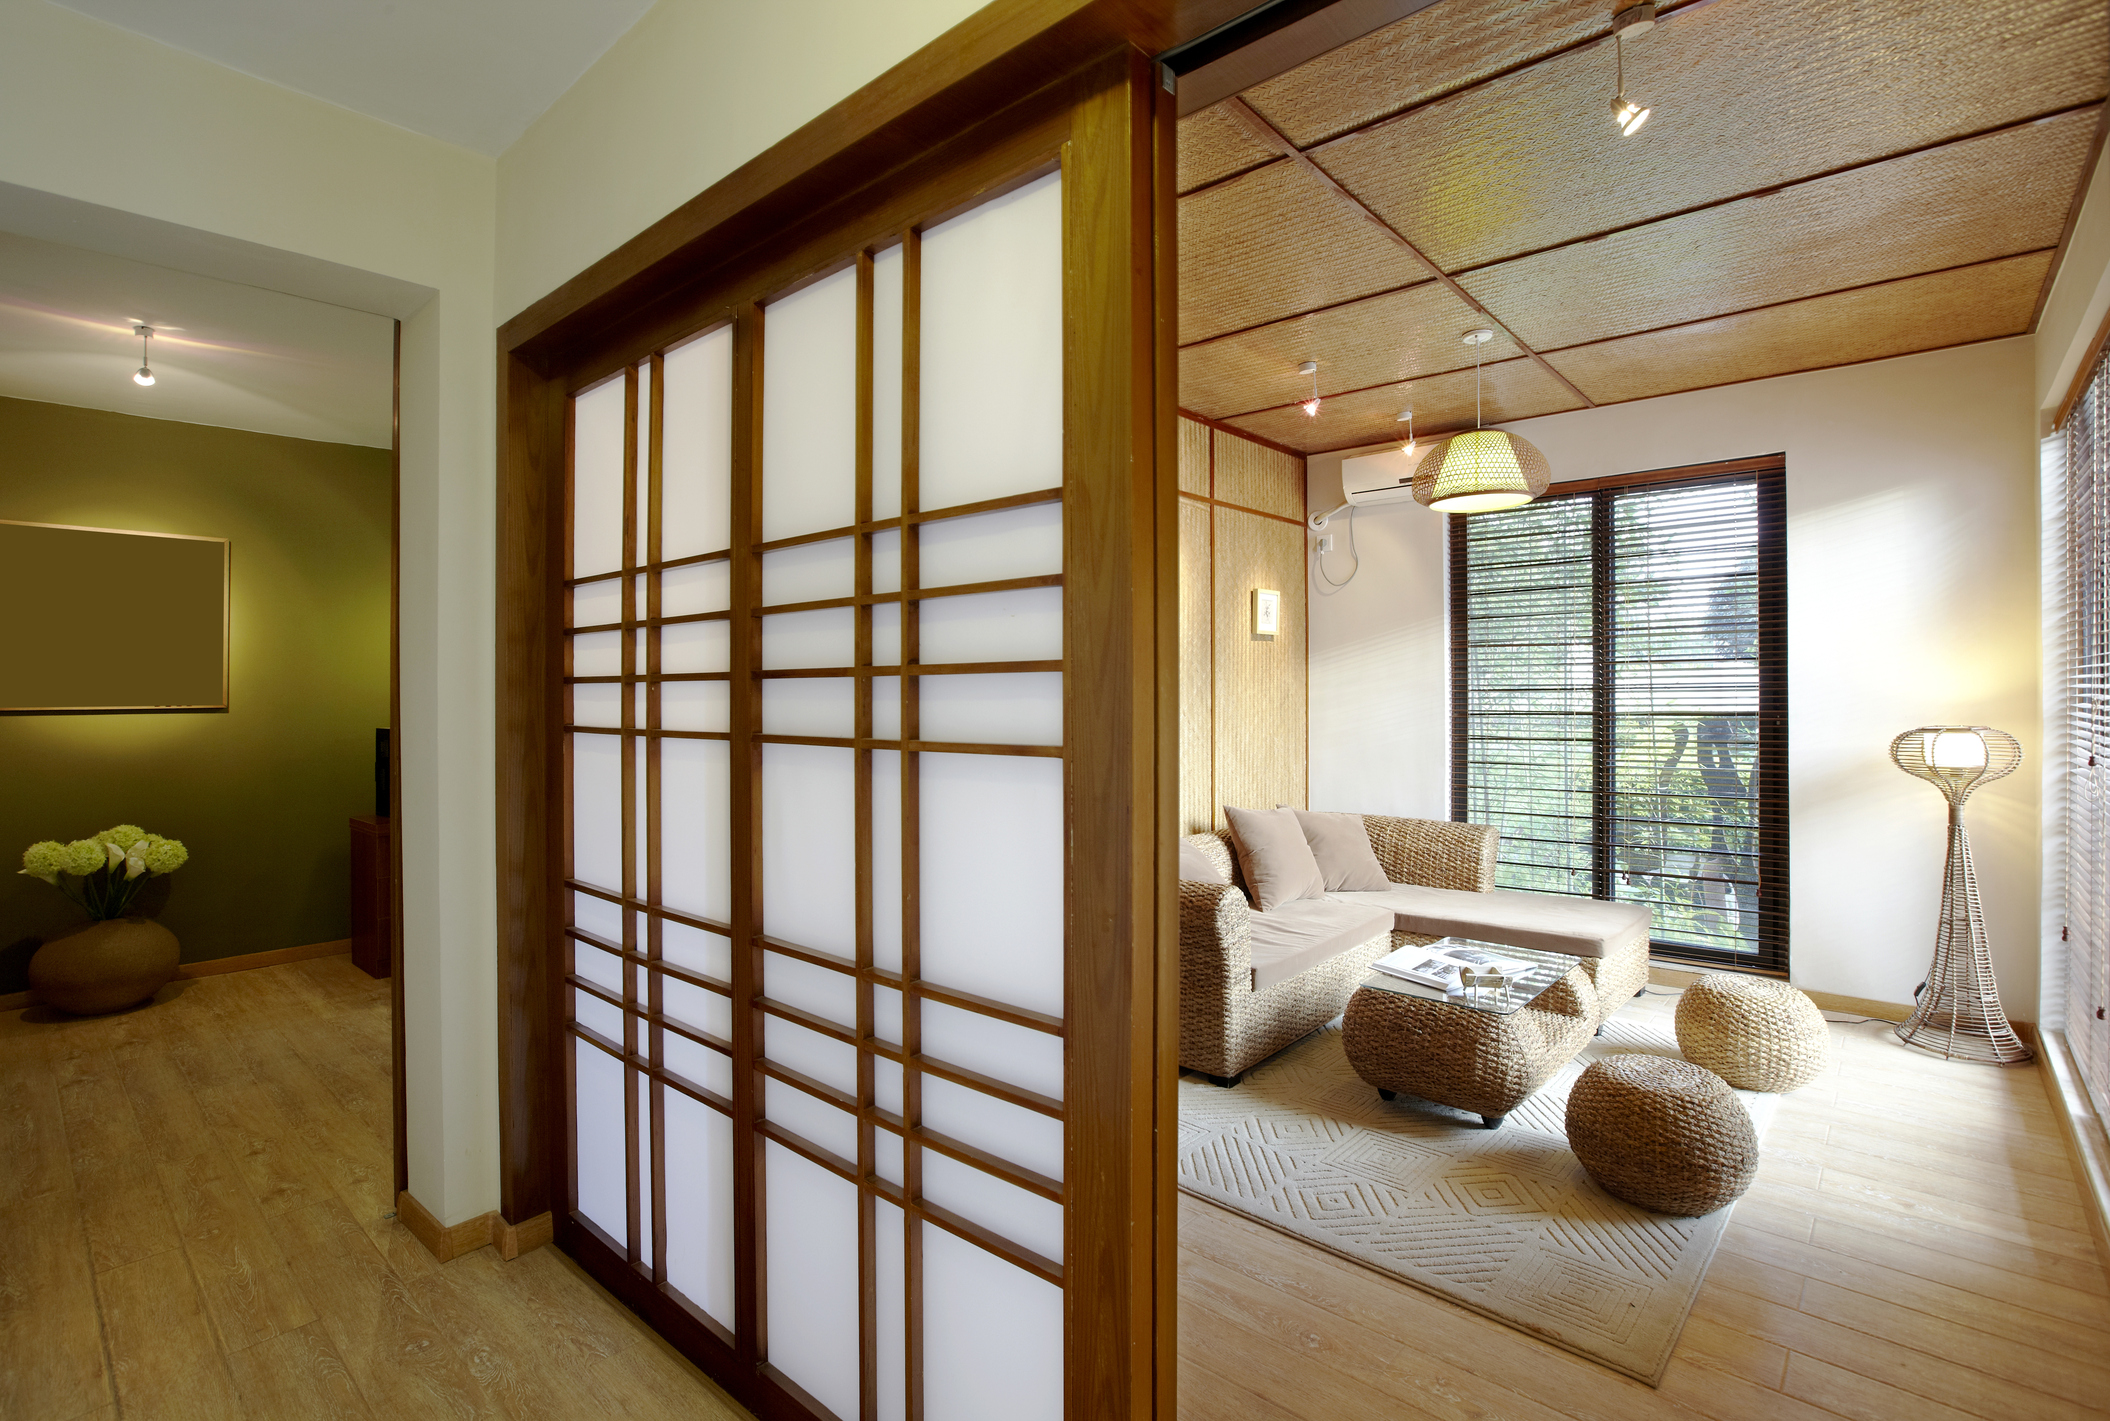 Japanese Apartment Design Understanding The Space Lovetoknow